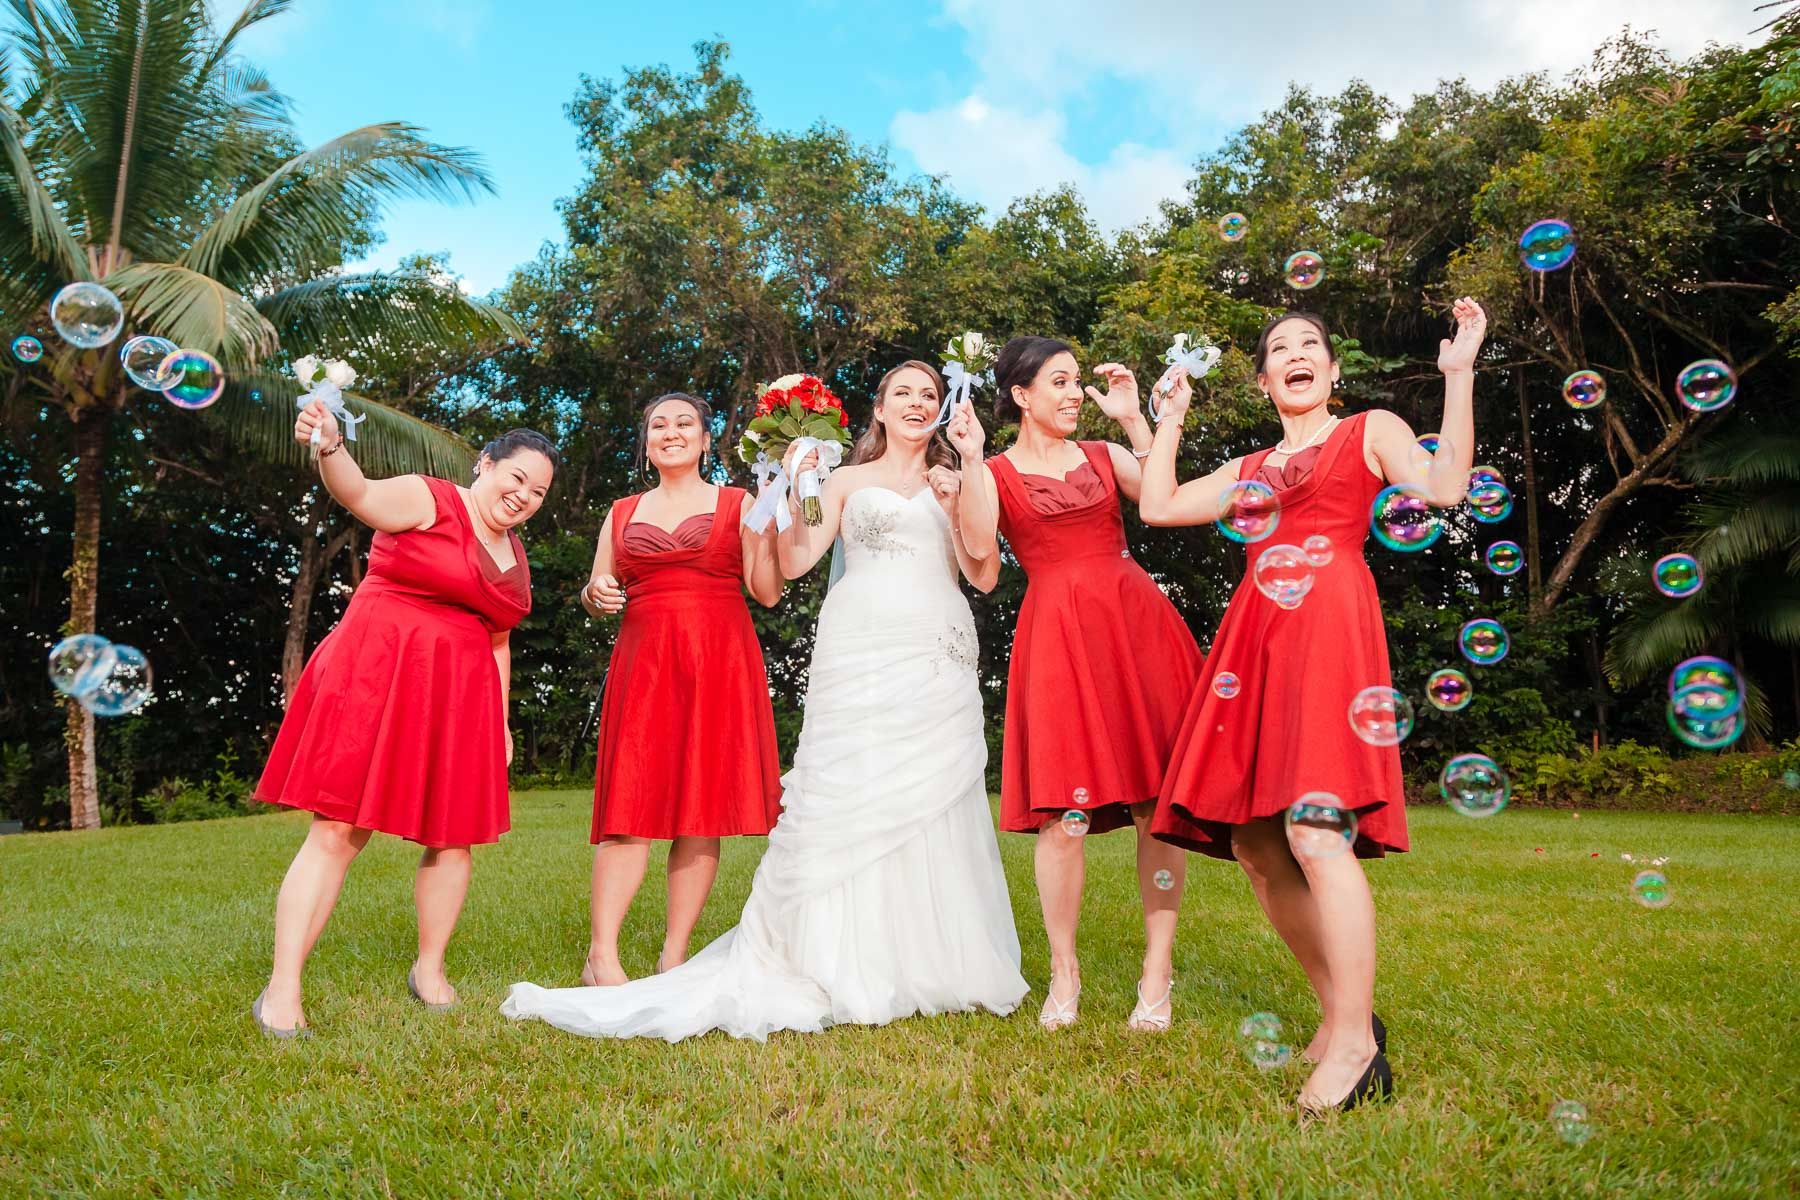 bride and bridesmaids wedding portrait with bubbles